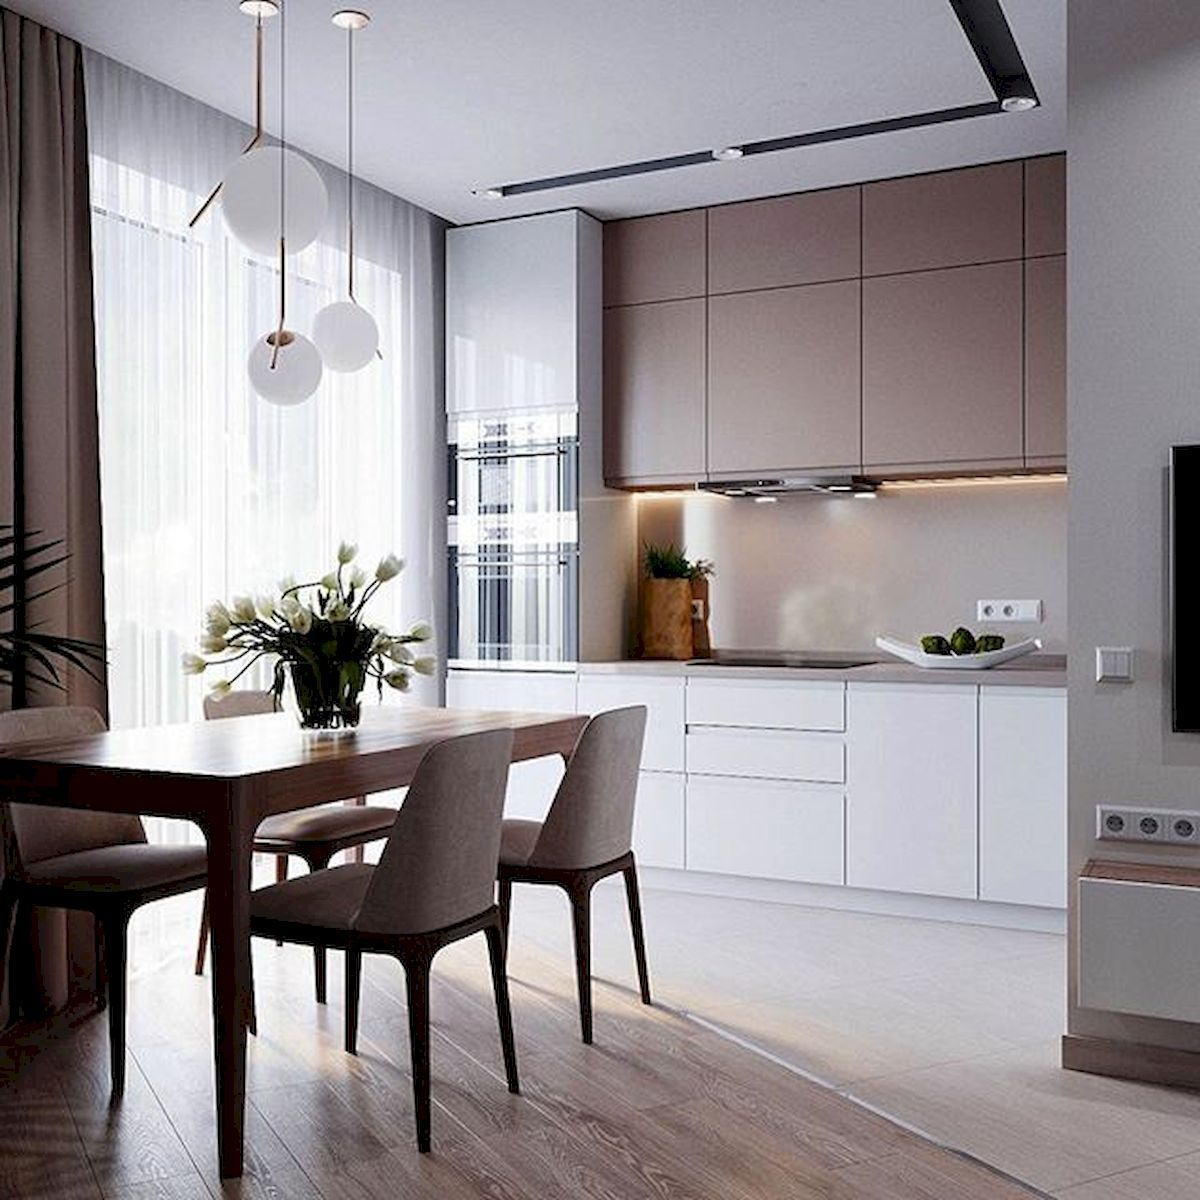 Interior Design For Kitchen For Flats: 30+ Minimalist But Luxurious Kitchen Design